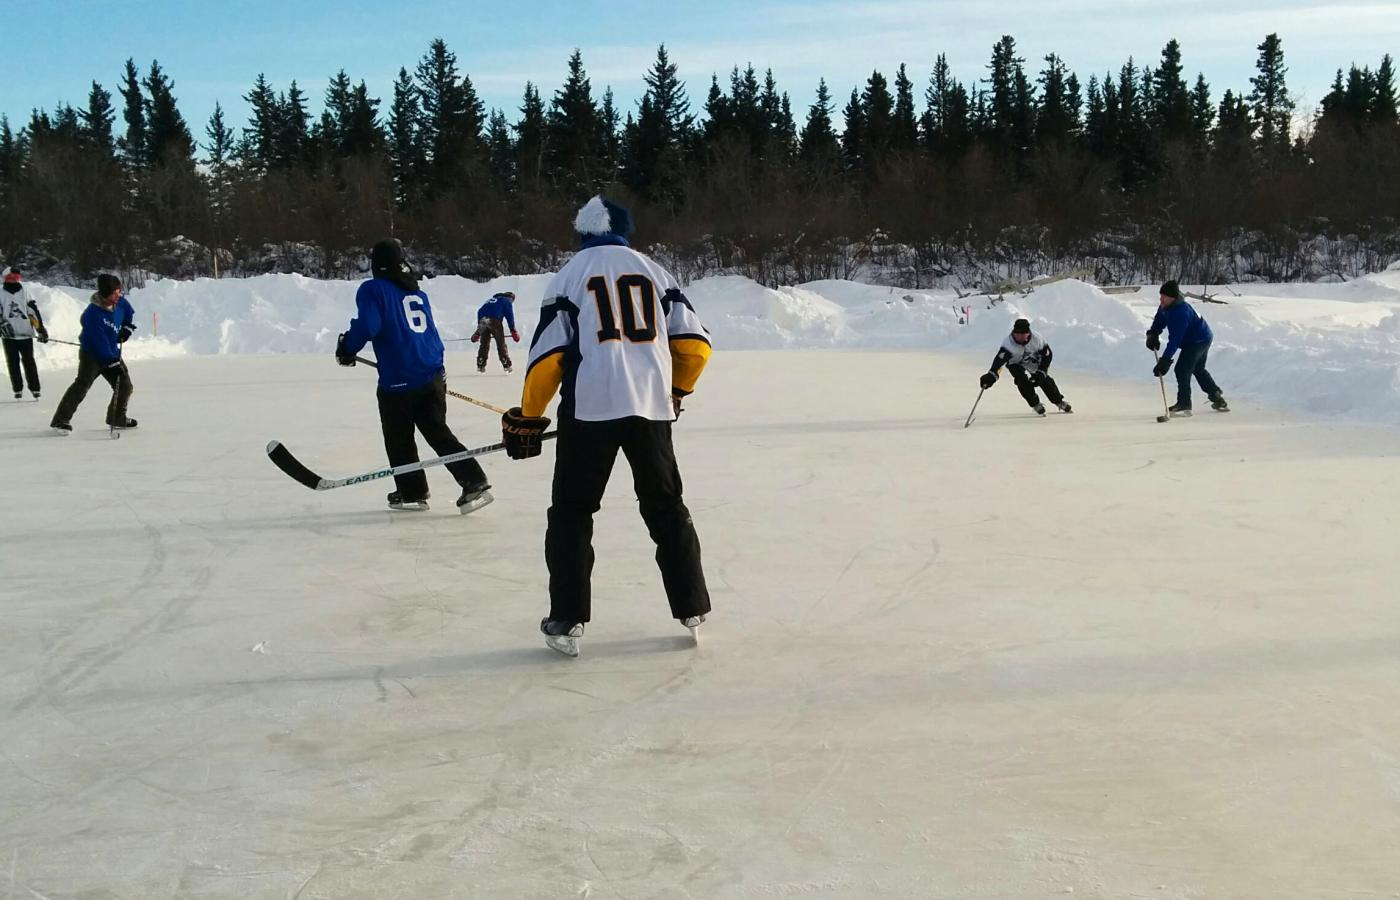 People playing hocket at the Polar Pond Hockey Tournament in Hay River, NWT.